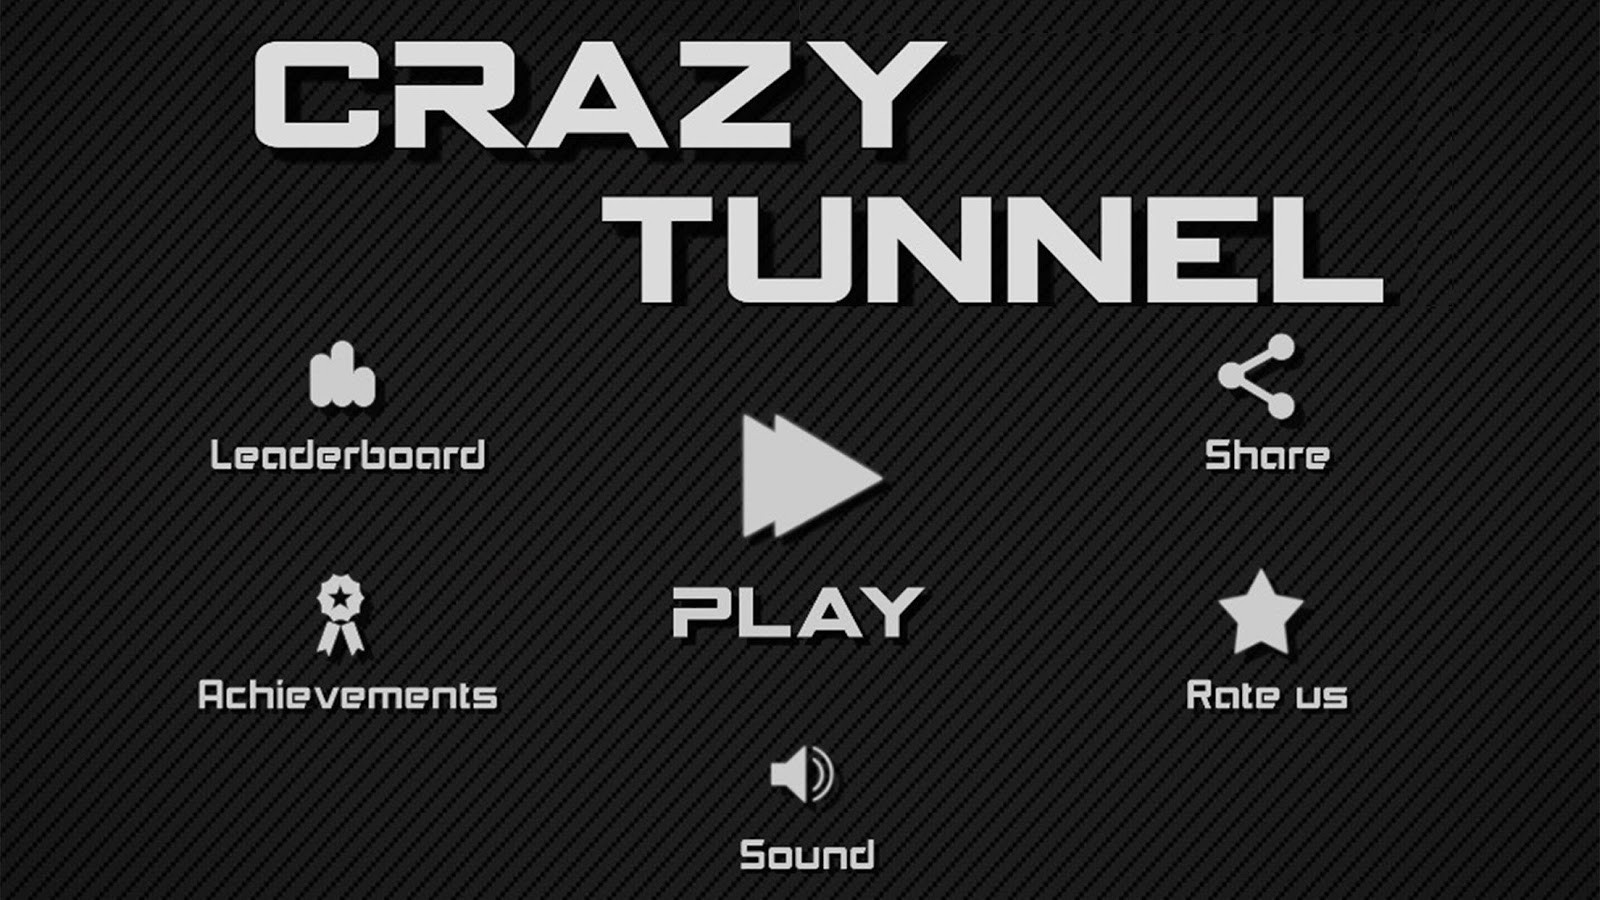 Crazy Tunnel